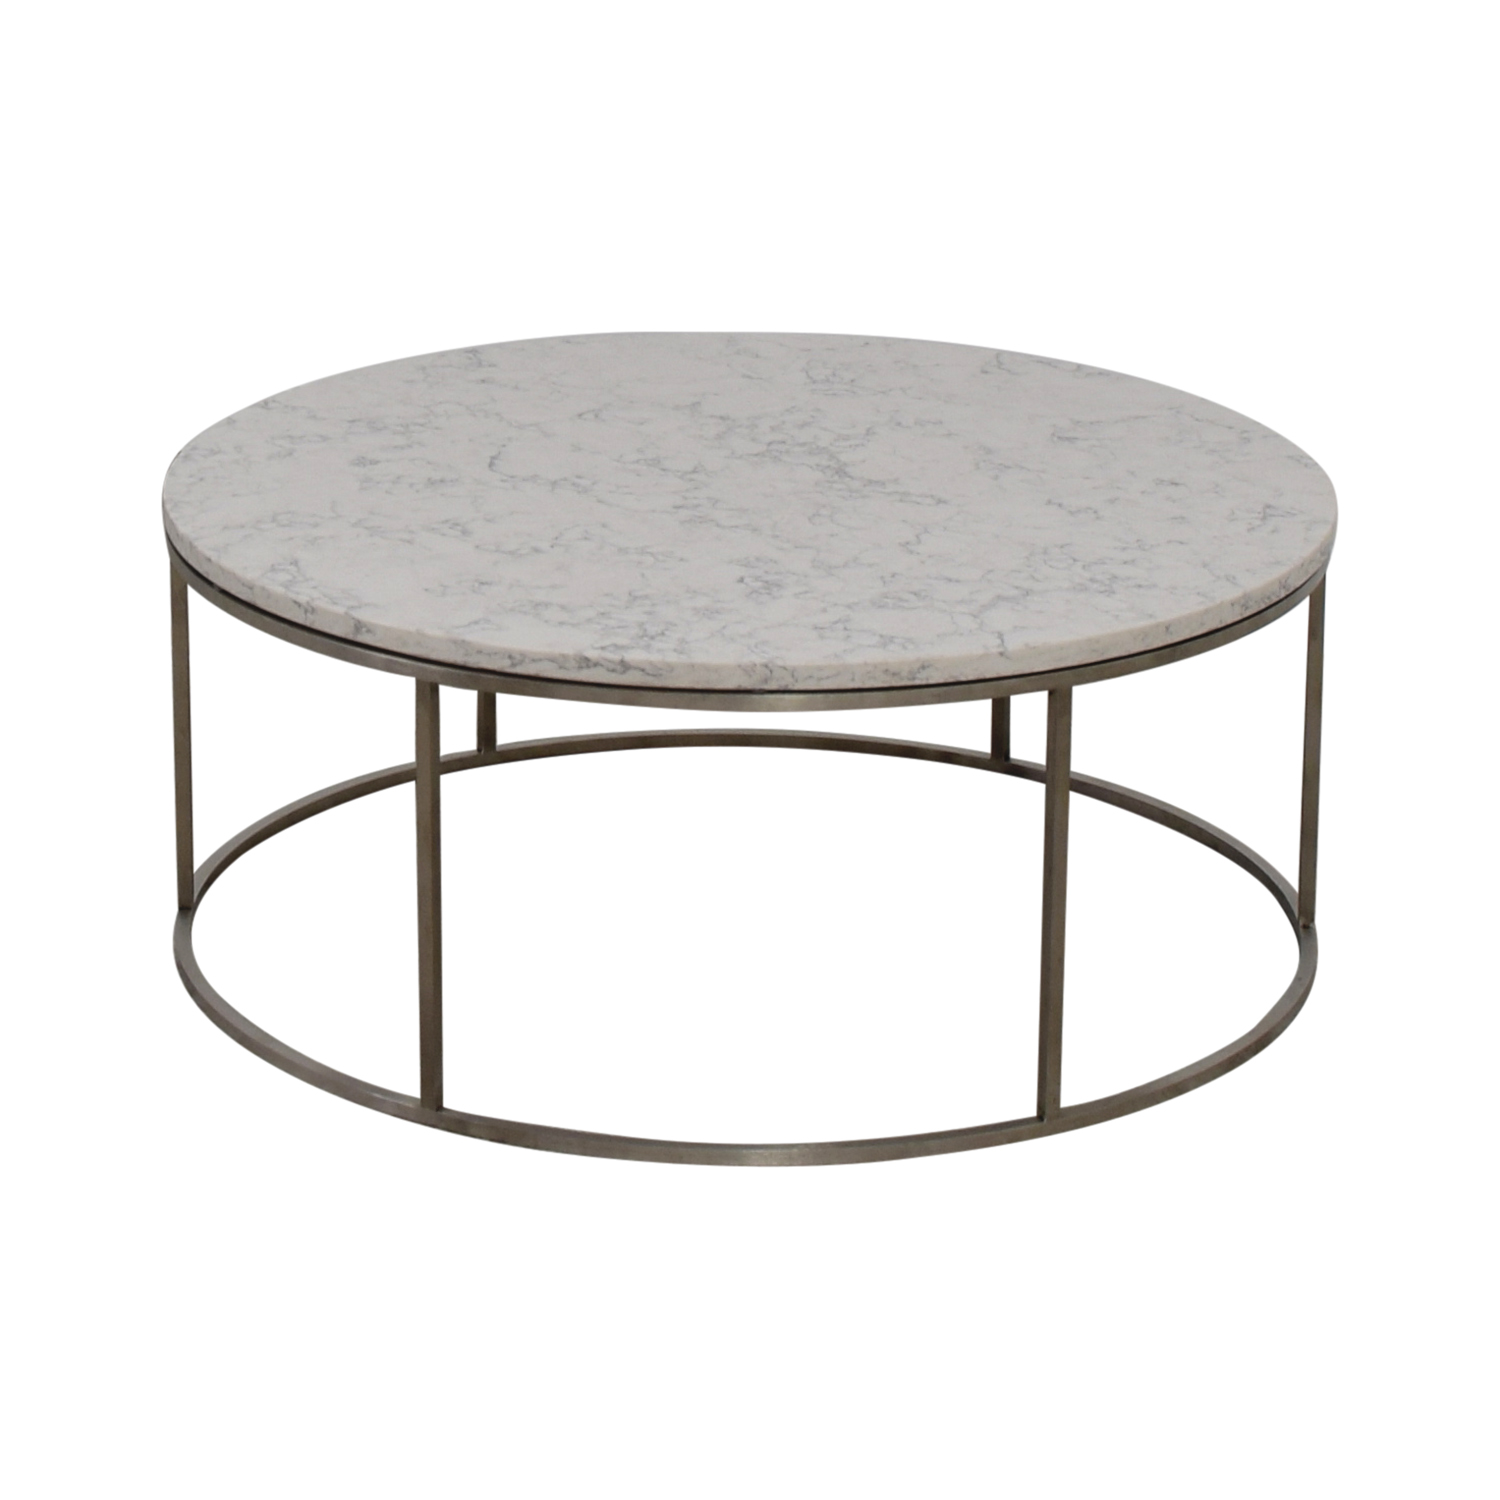 53 Off Room Amp Board Room Amp Board Round Marble Top